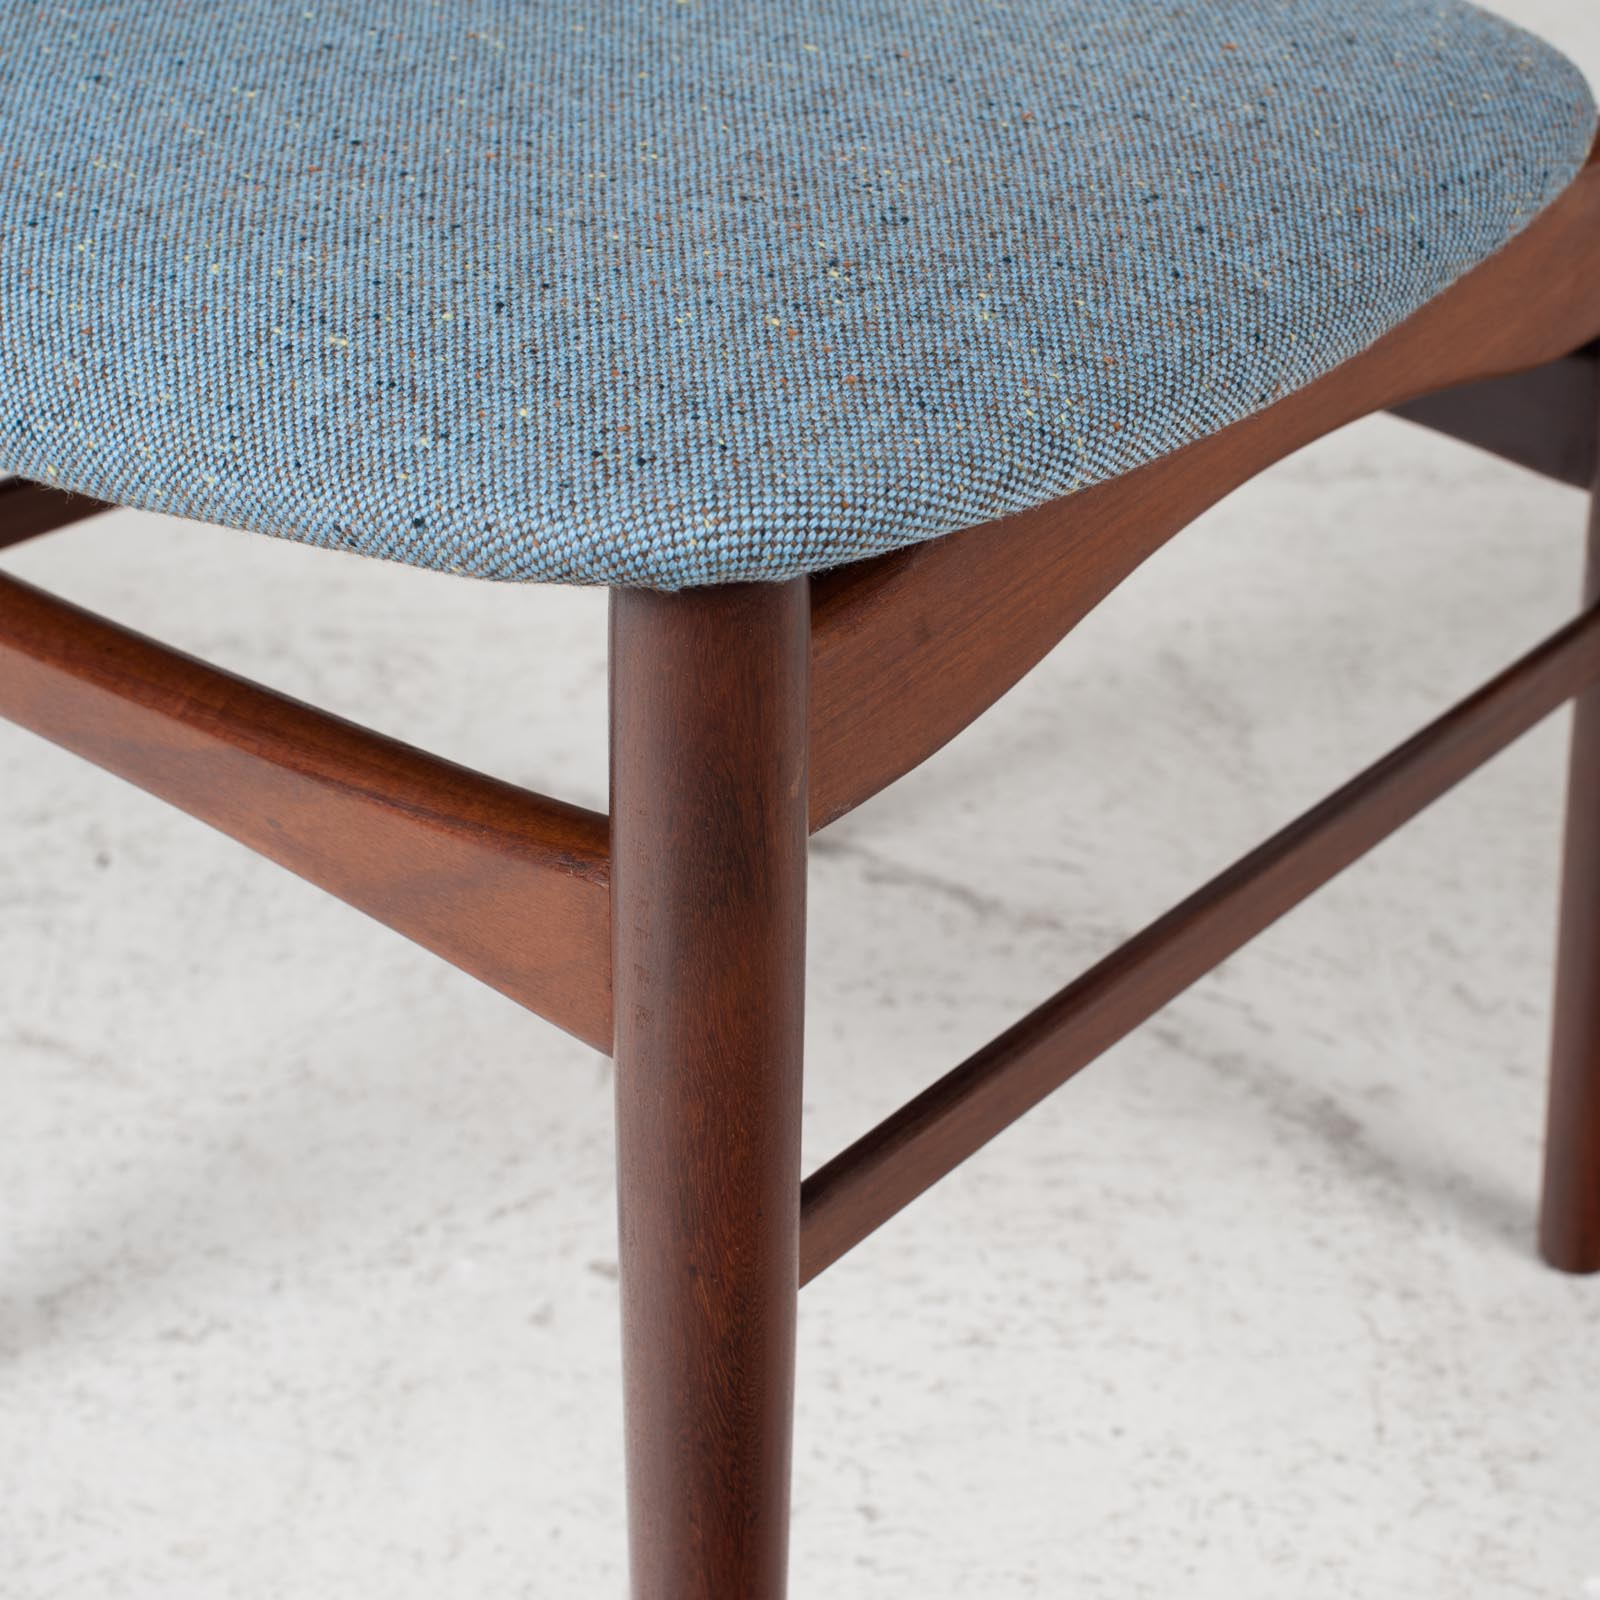 Set Of 4 Curved Lip Dining Chairs In Teak 1960s Denmark 06